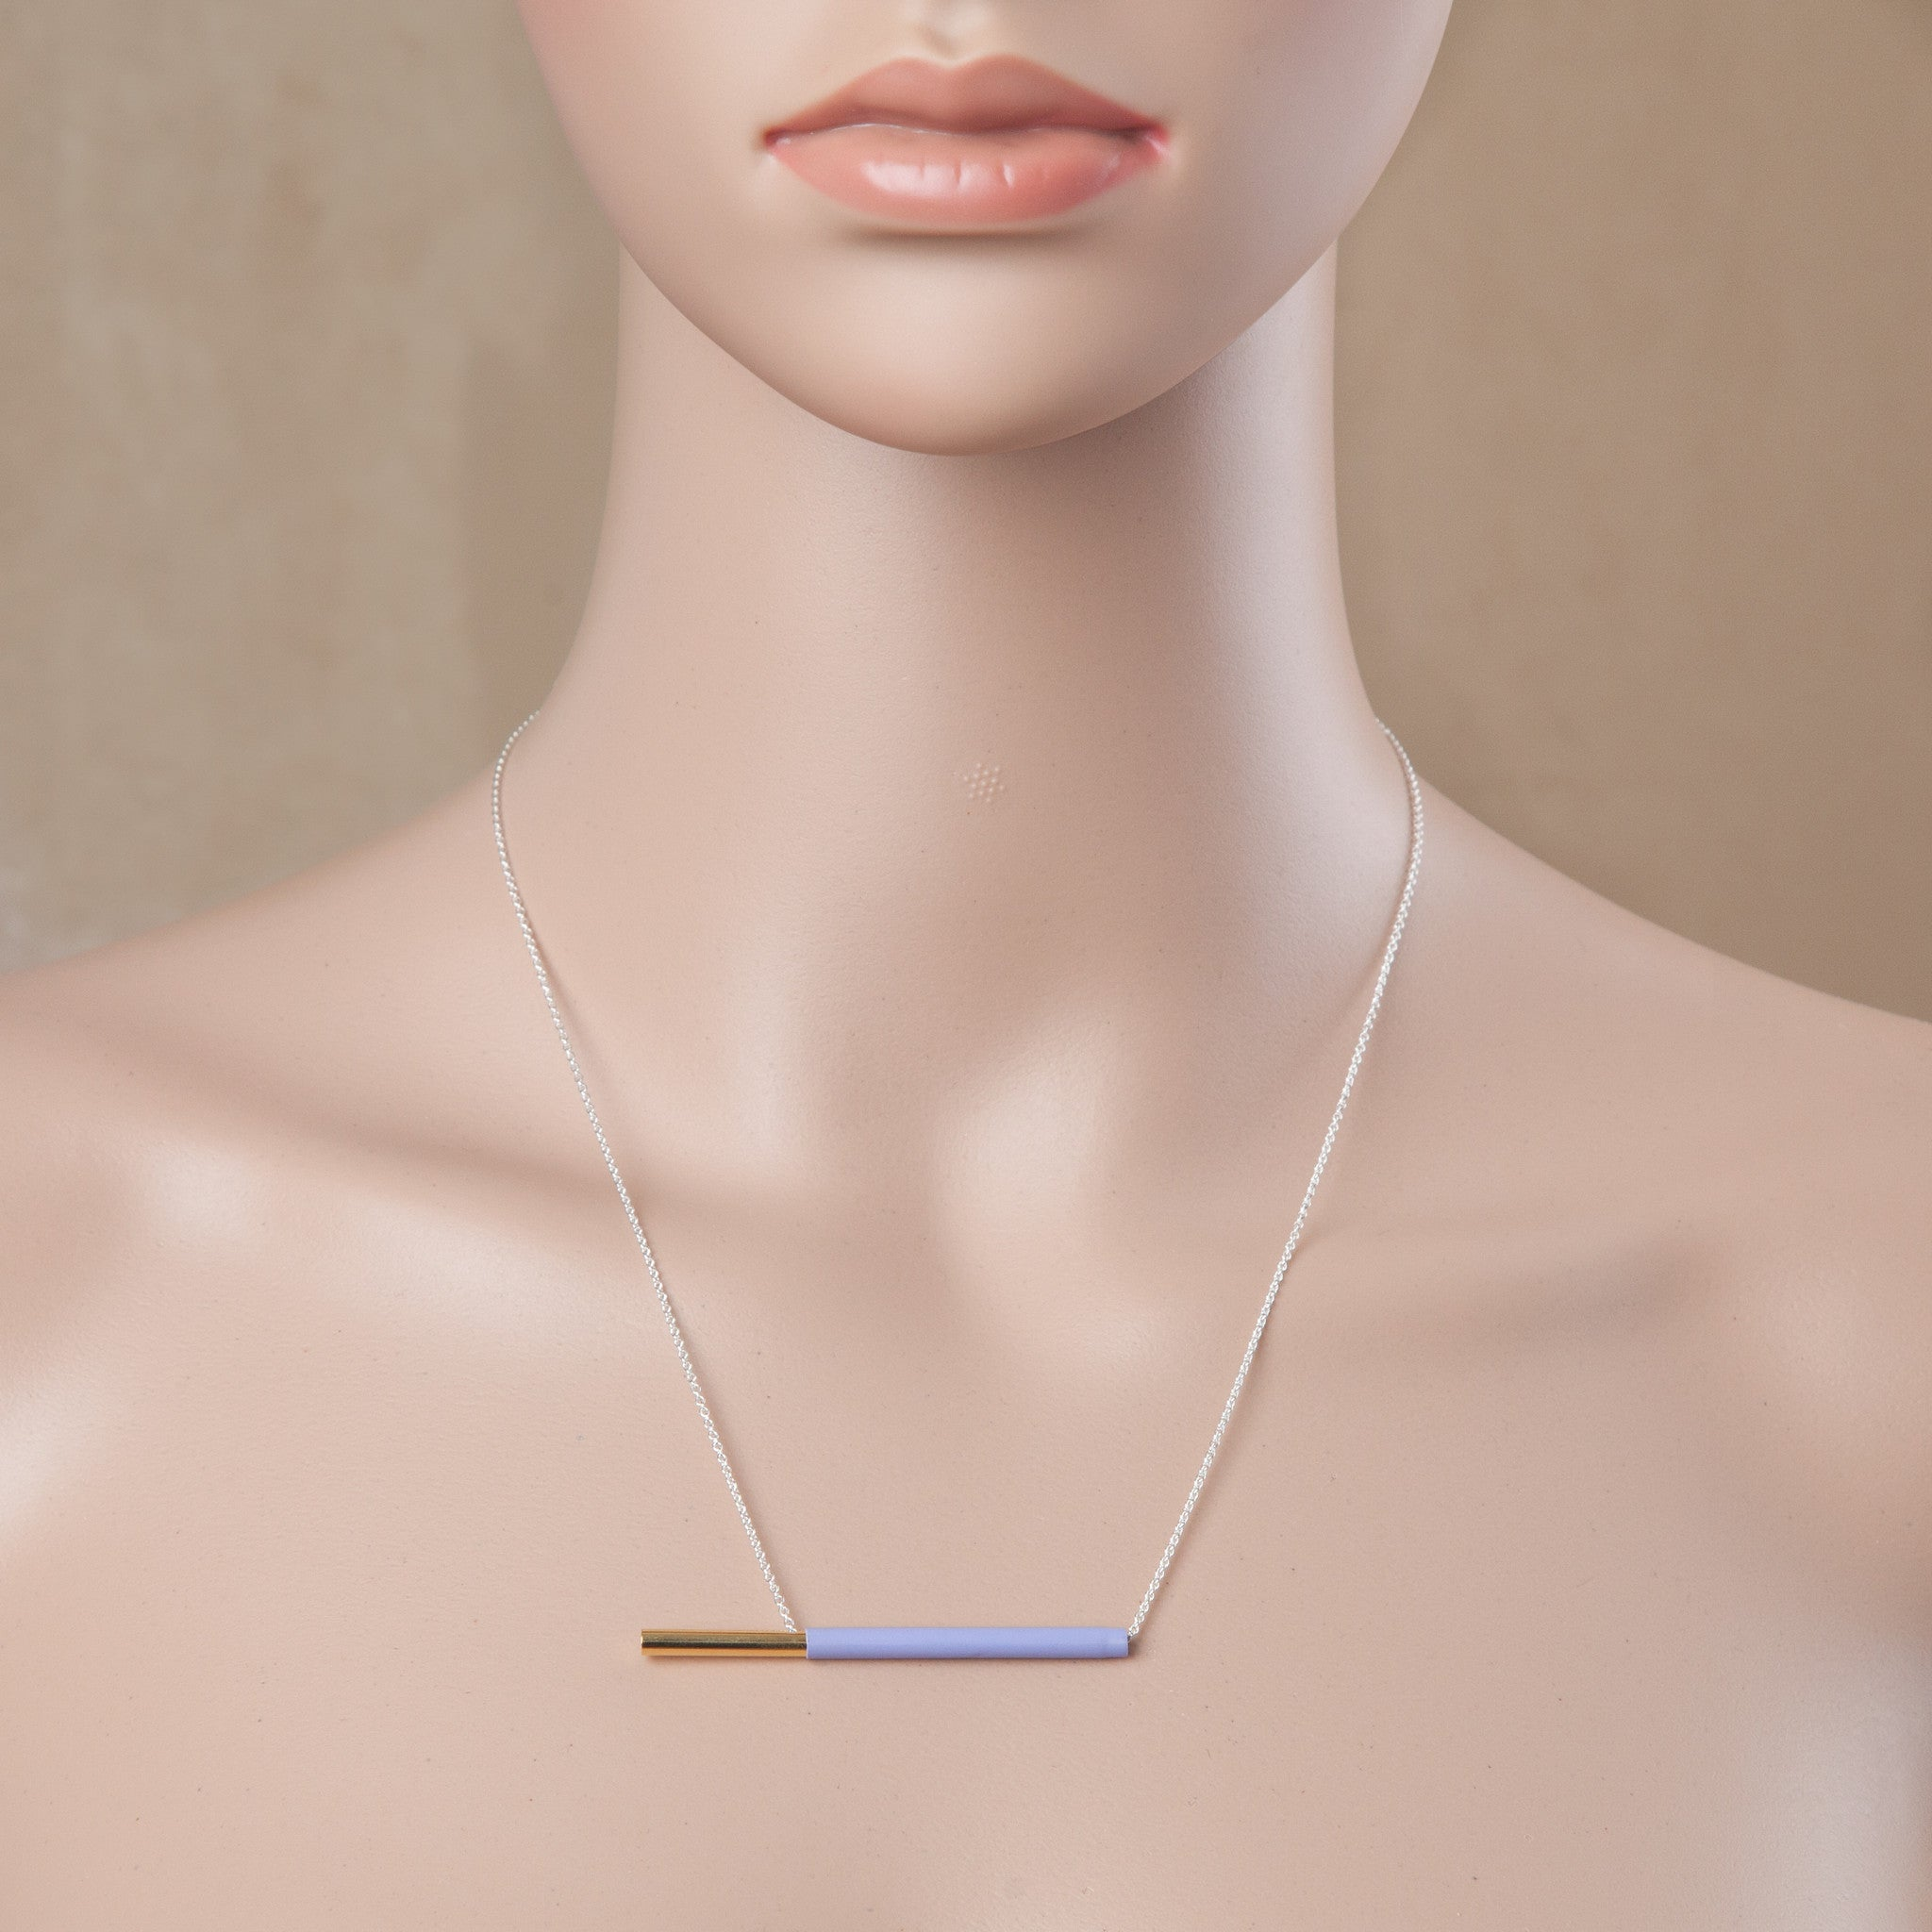 POCKY NECKLACE LAVENDER